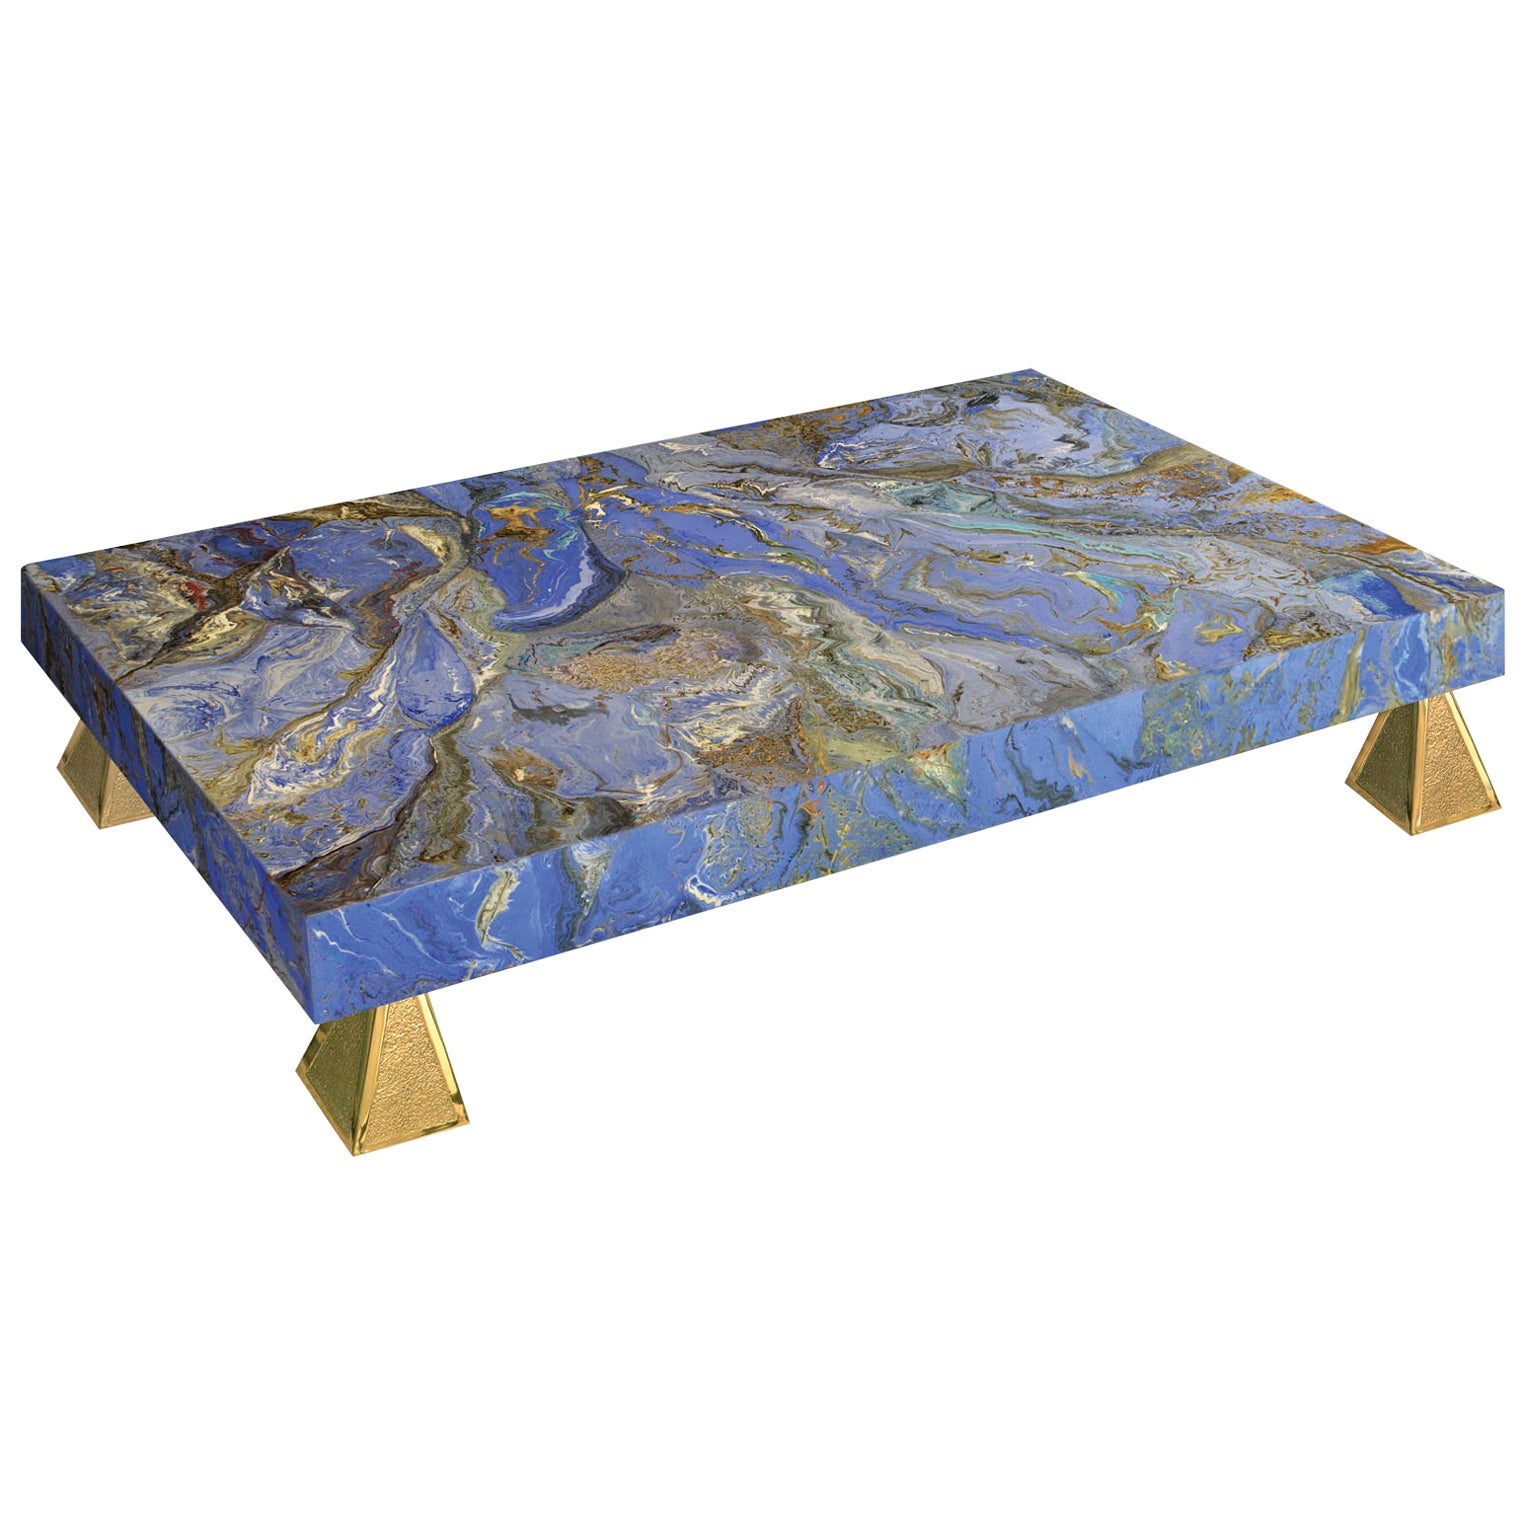 Modern Blue Coffee Table handmade marbled Scagliola decoration Casted Brass Feet